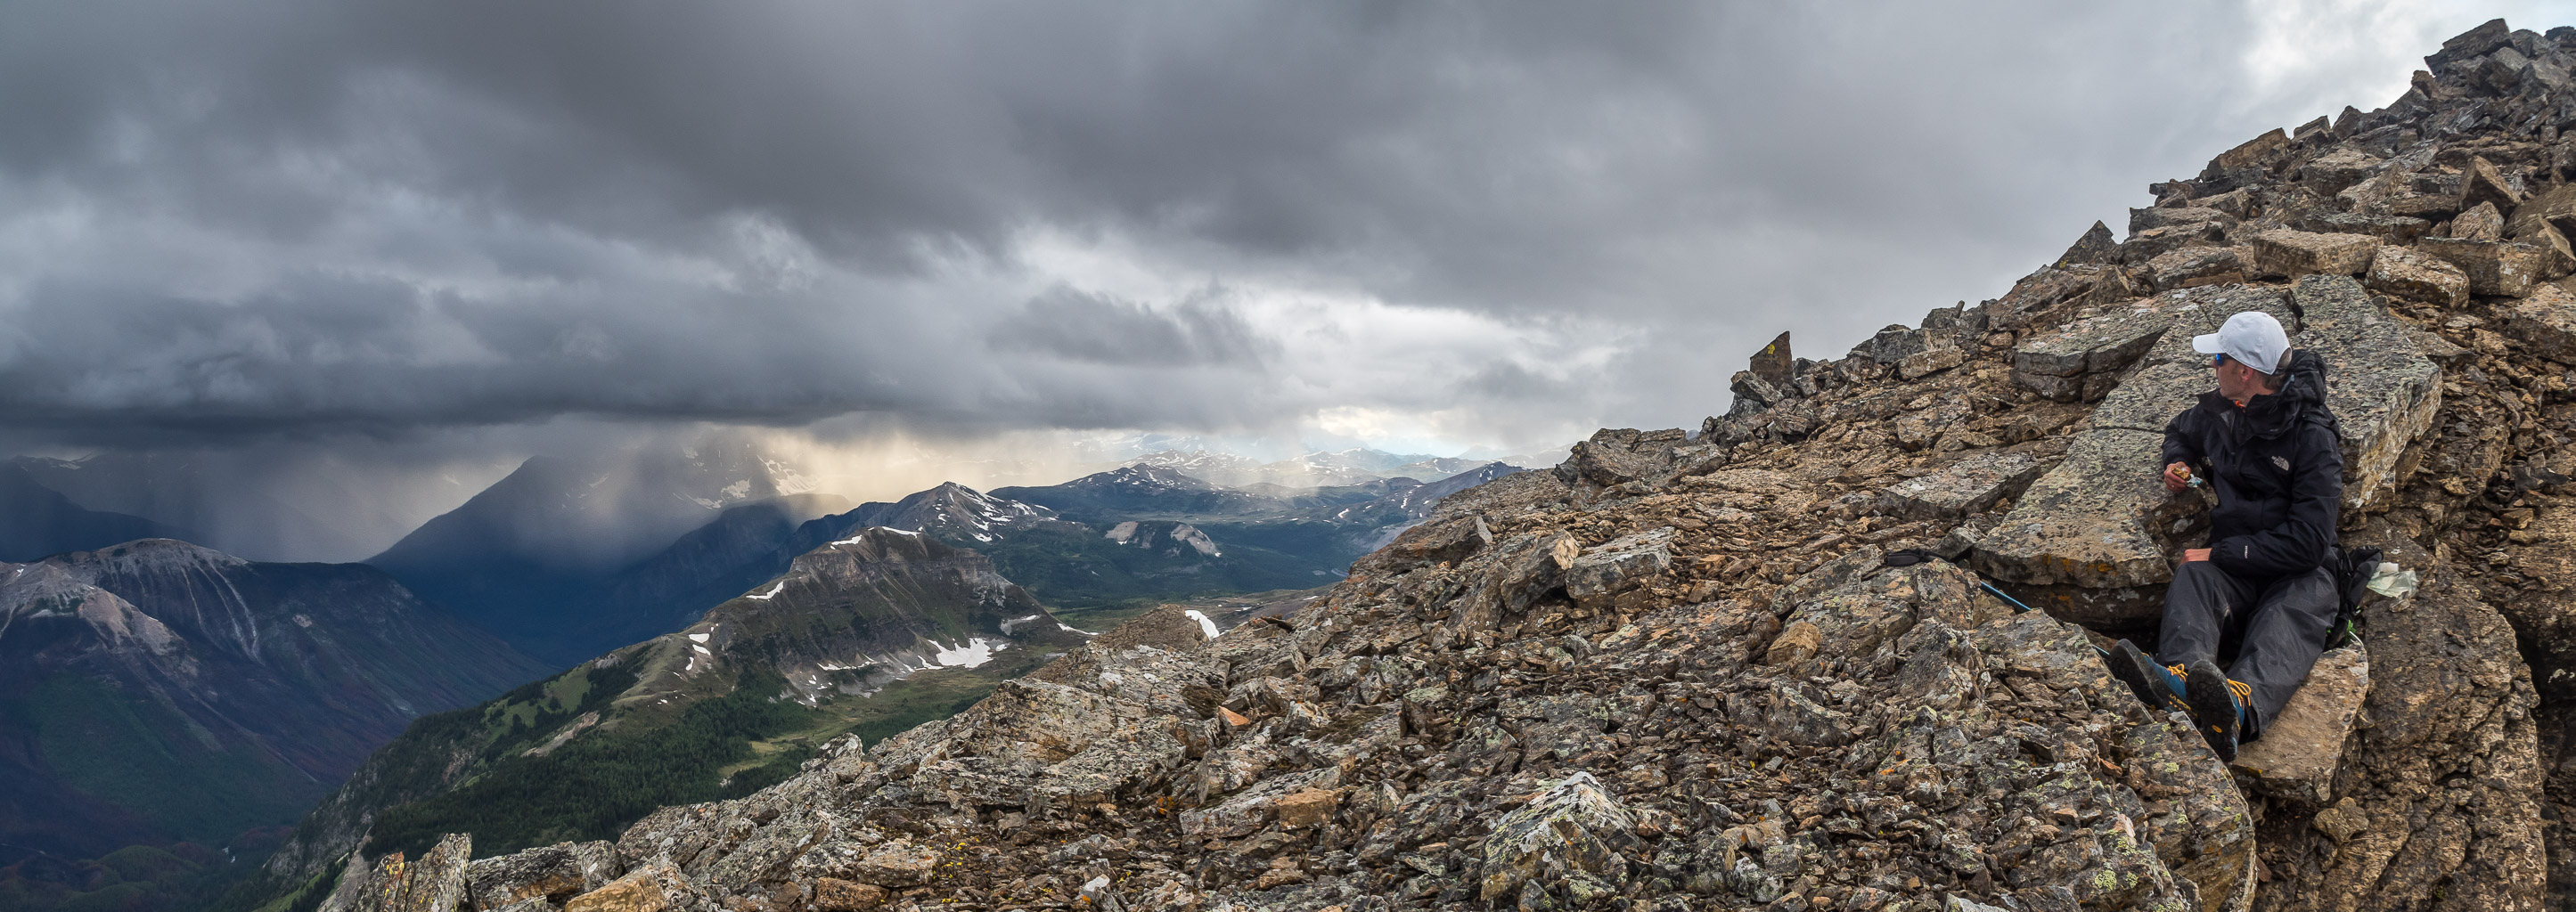 Phil awaits the storm just under the summit of Golden Mountain.